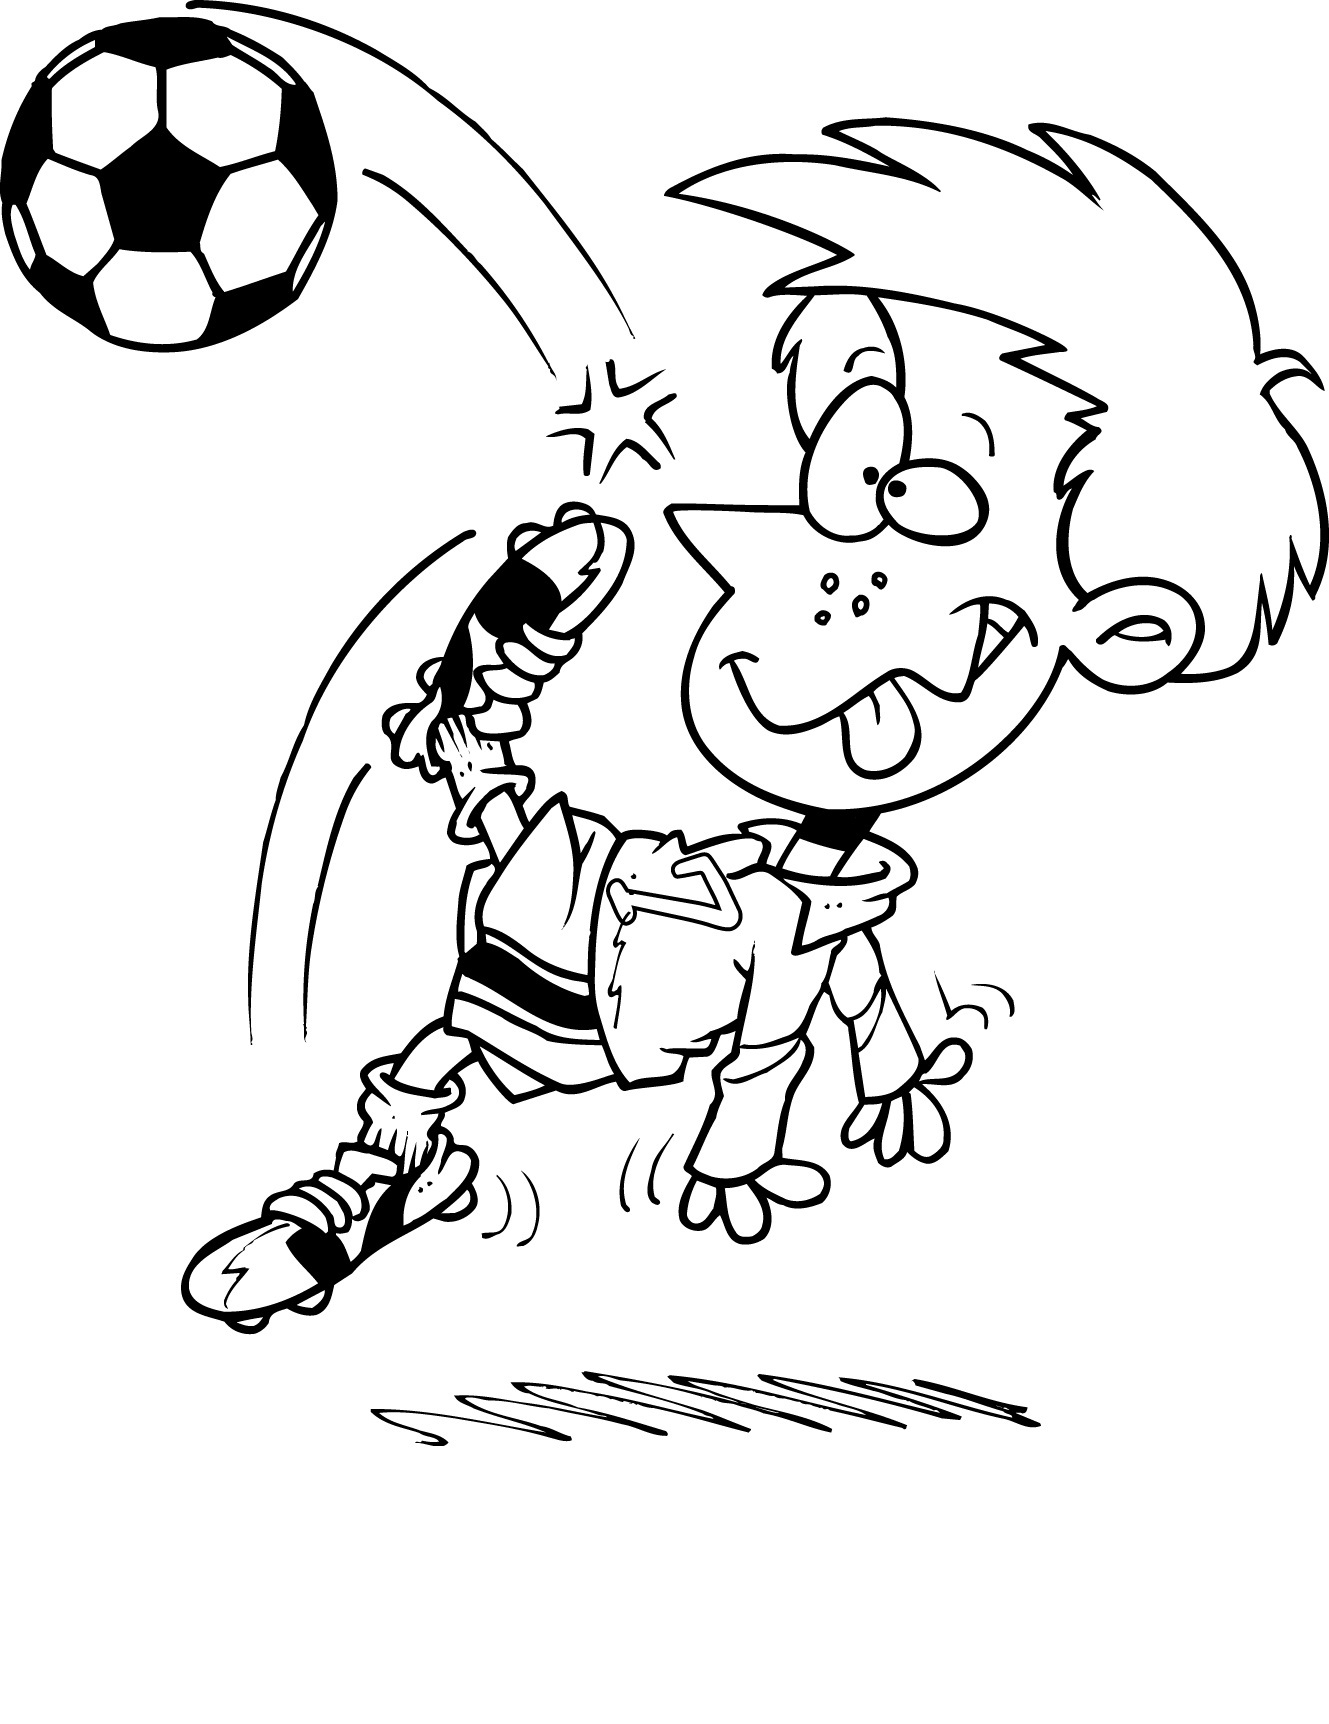 colouring pages soccer free printable soccer coloring pages for kids pages soccer colouring